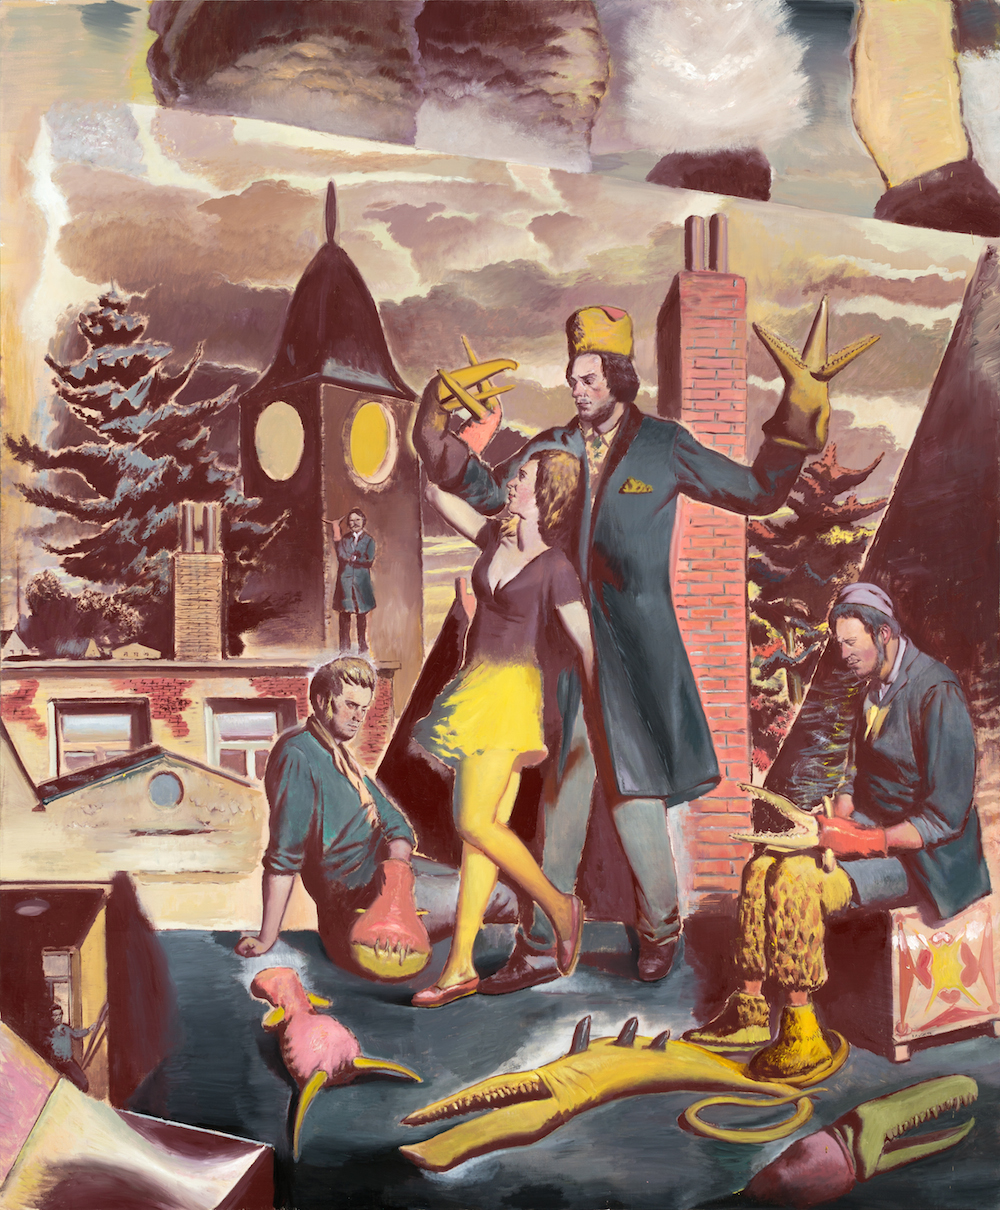 Neo Rauch, Über den Dächern, 2014, oil on canvas, 98 1/2 x 118 1/8 inches (court